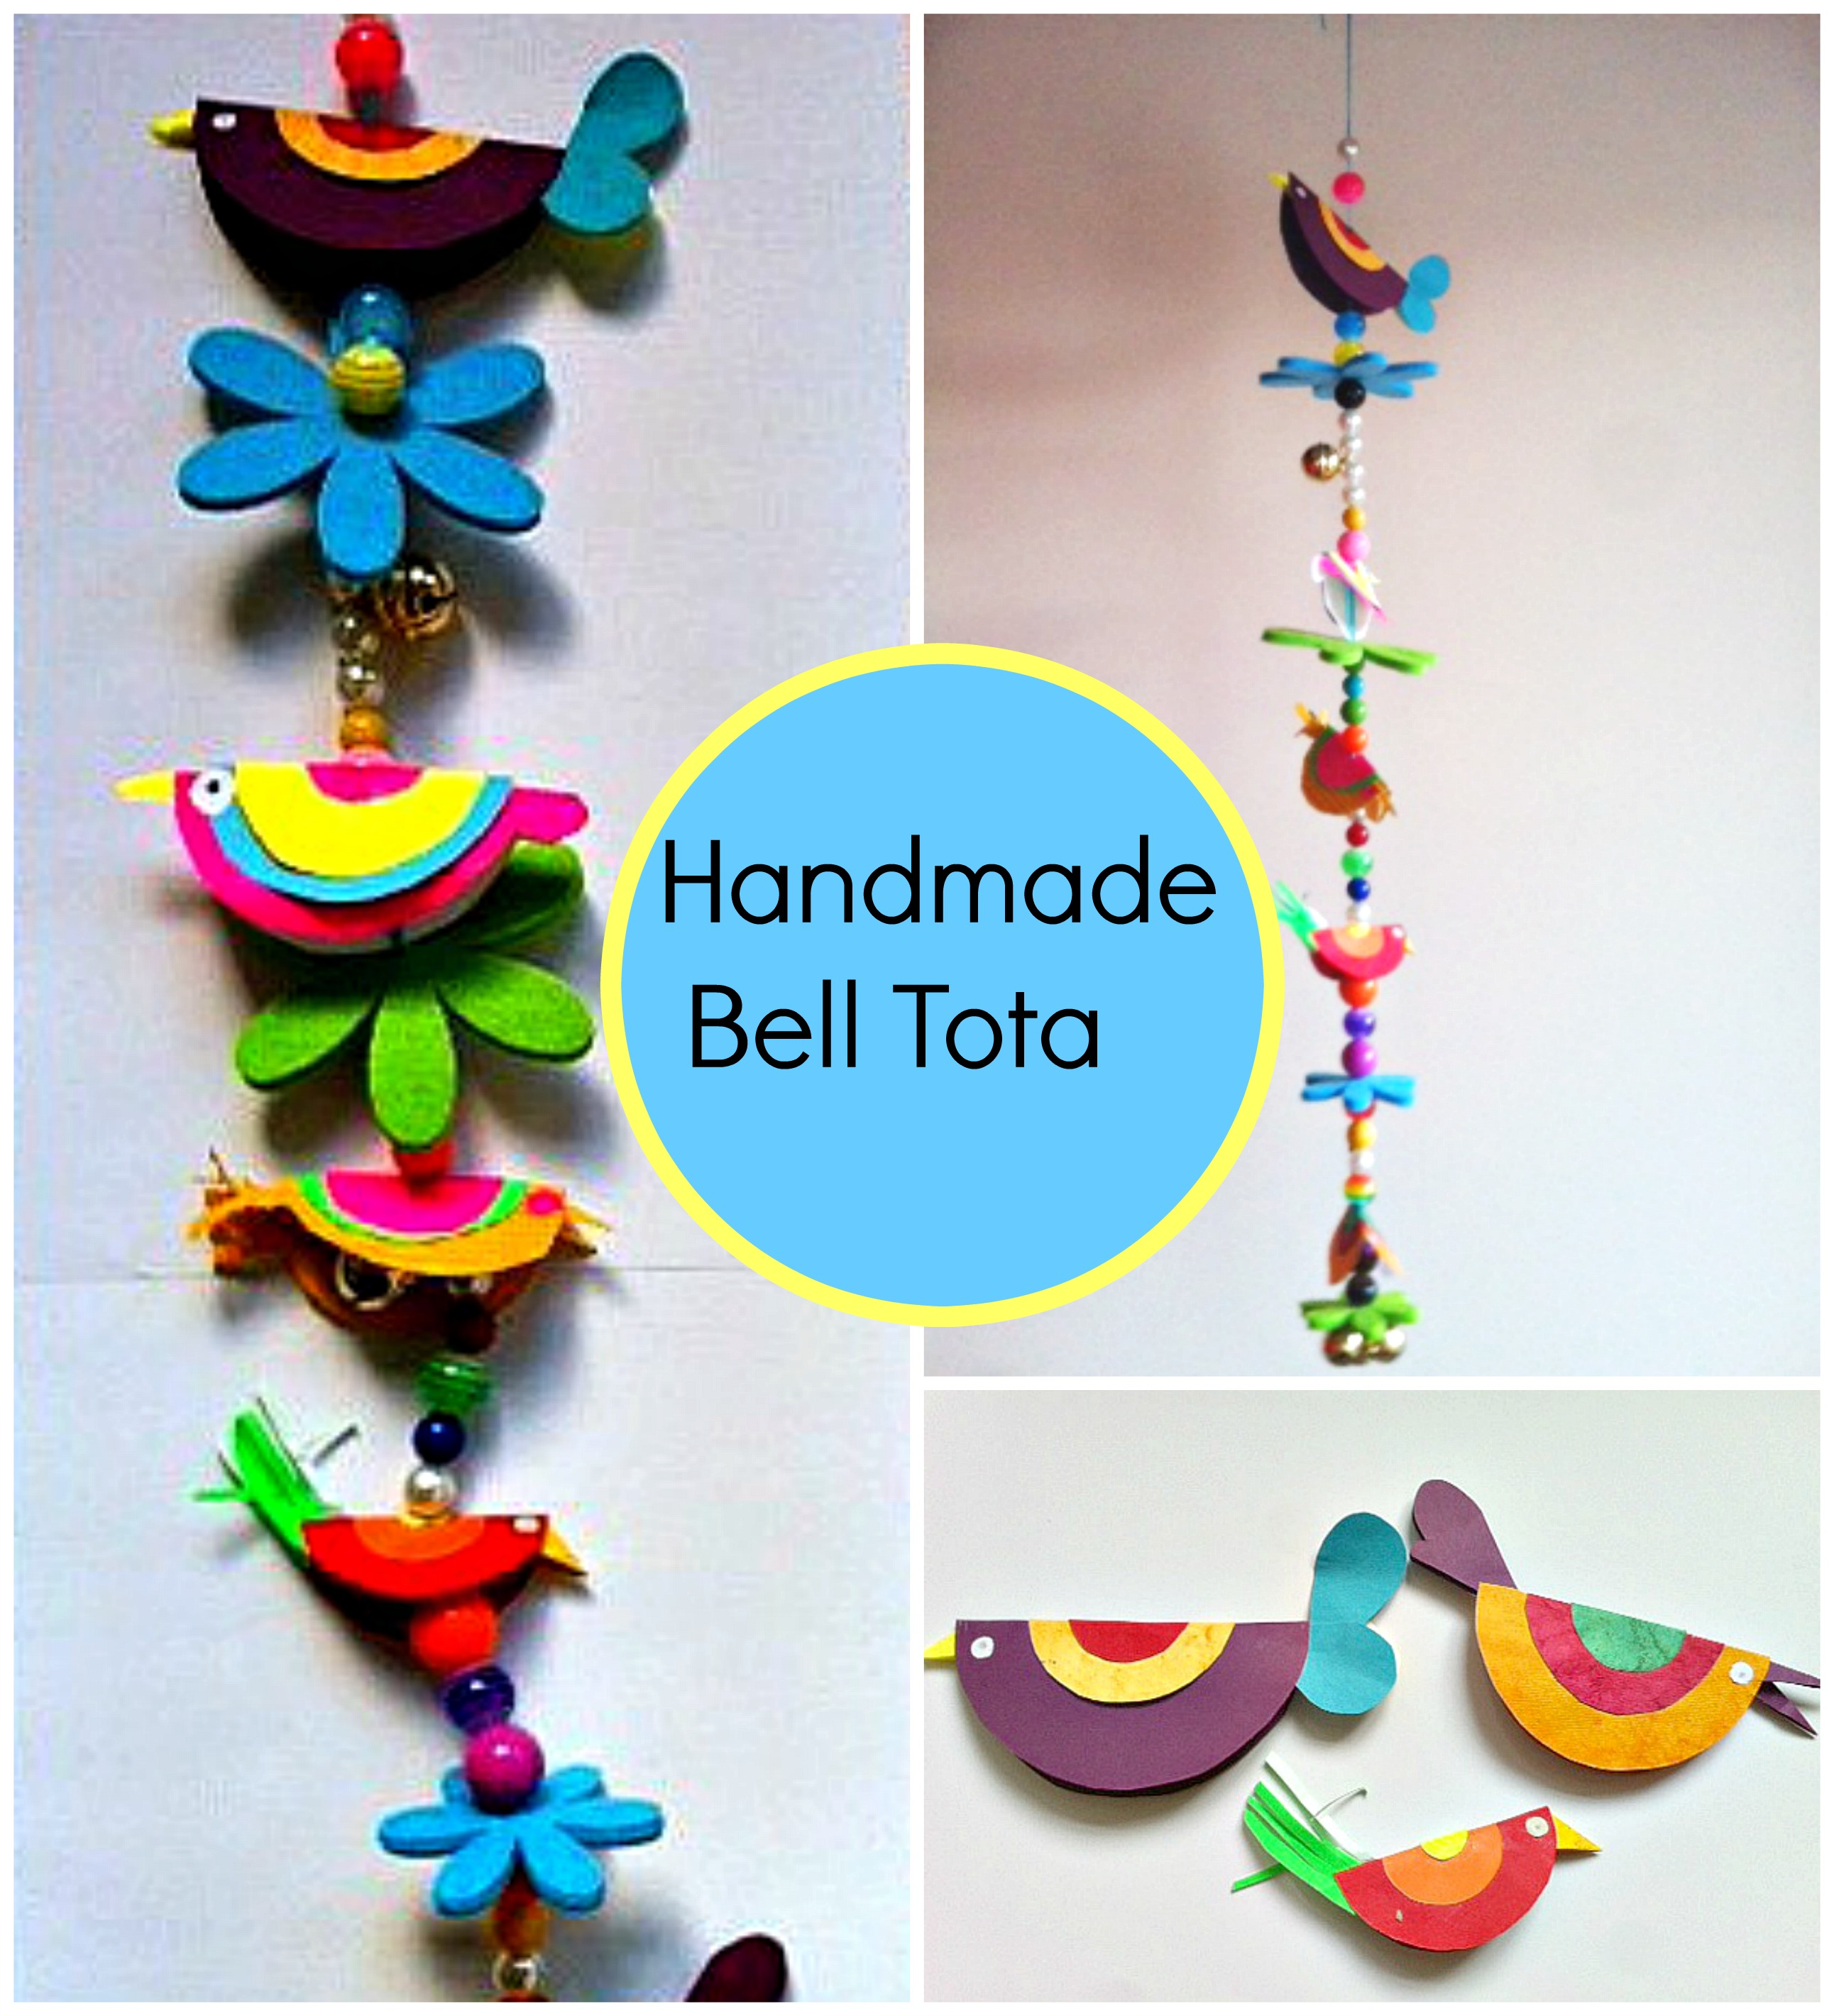 Kids Craft: Handmade Bell Tota